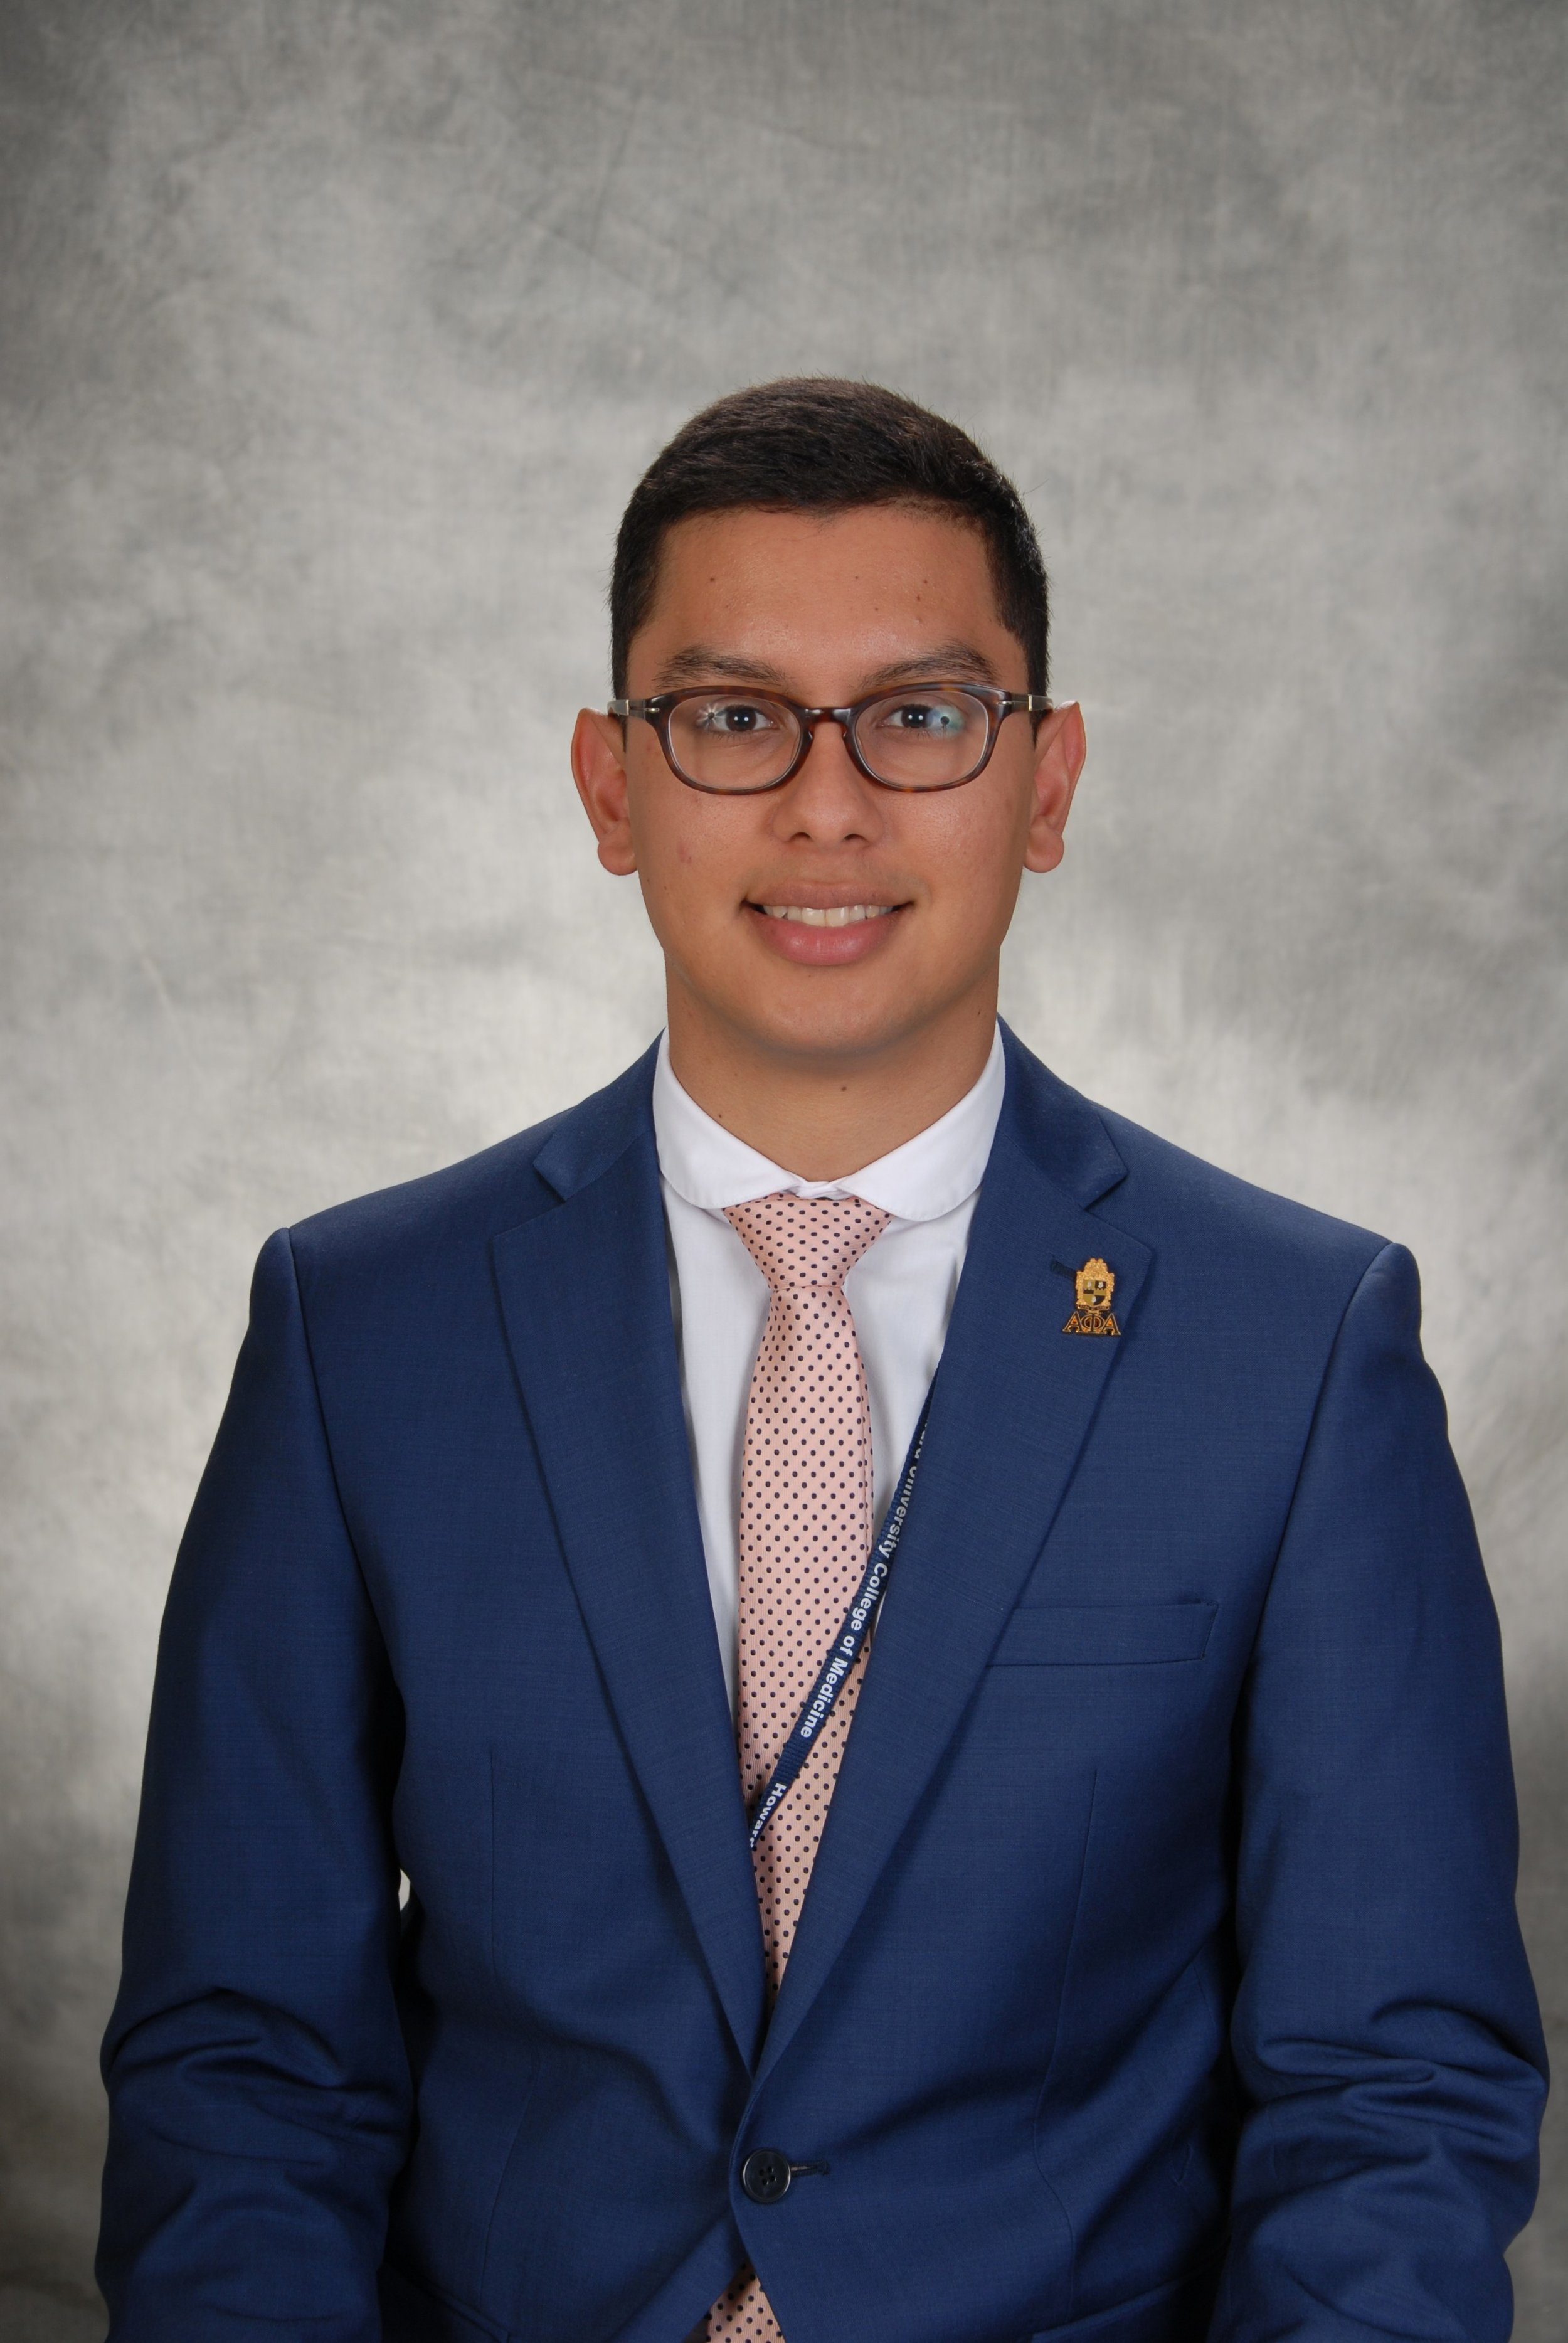 Eduardo Alvarado - Vp of Fundraising